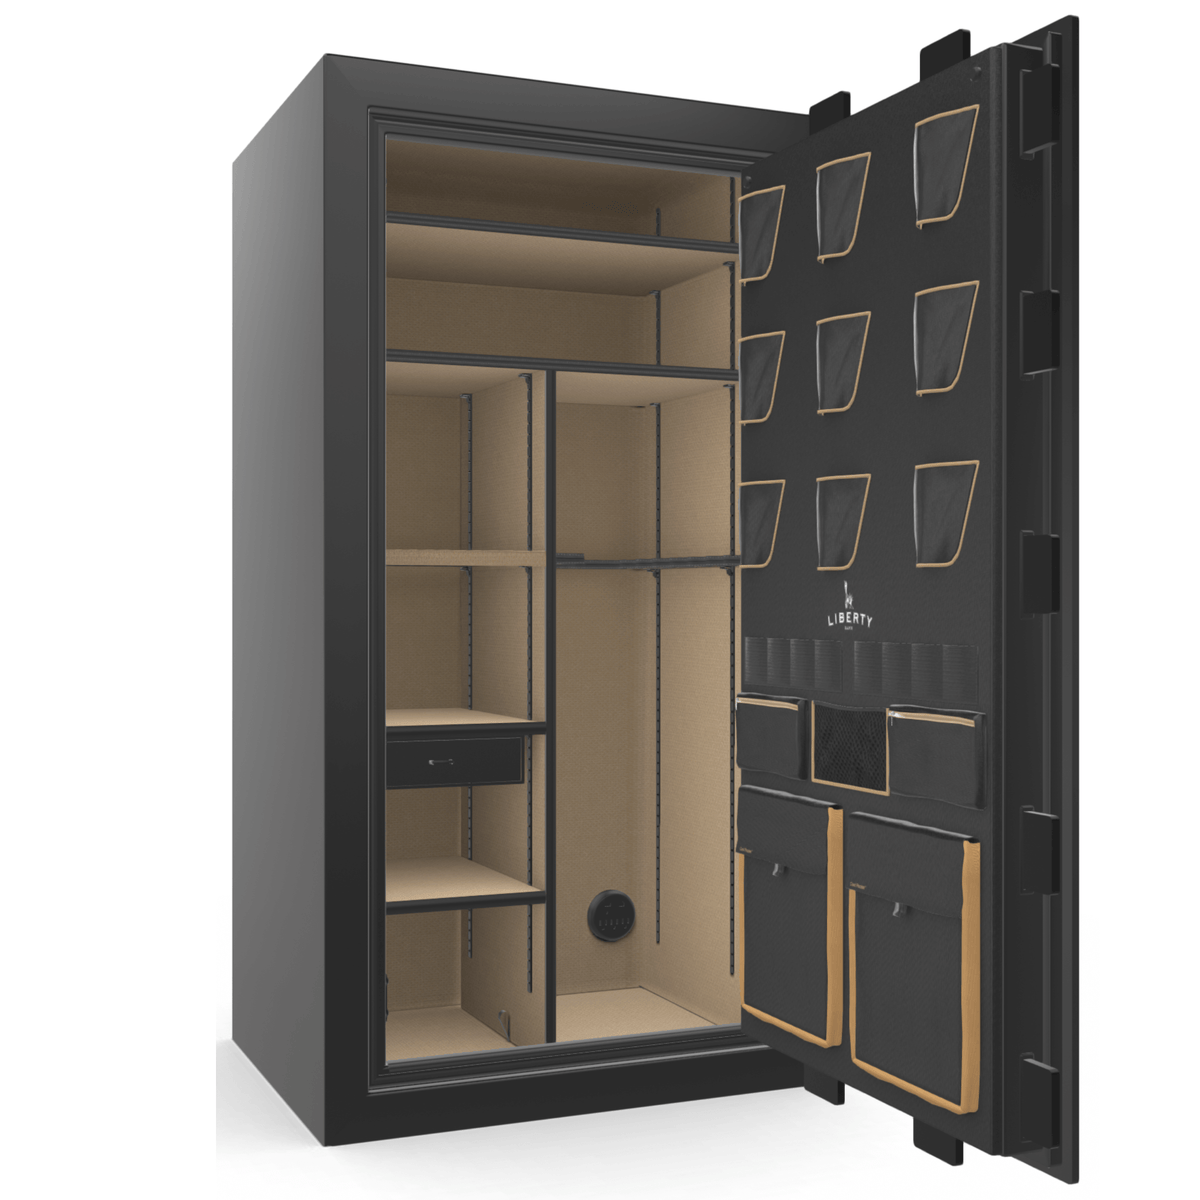 "Classic Plus | 40 | Level 7 Security | 110 Minute Fire Protection | Black Gloss | Brass Mechanical Lock | 65.5""(H) x 36""(W) x 32""(D)"